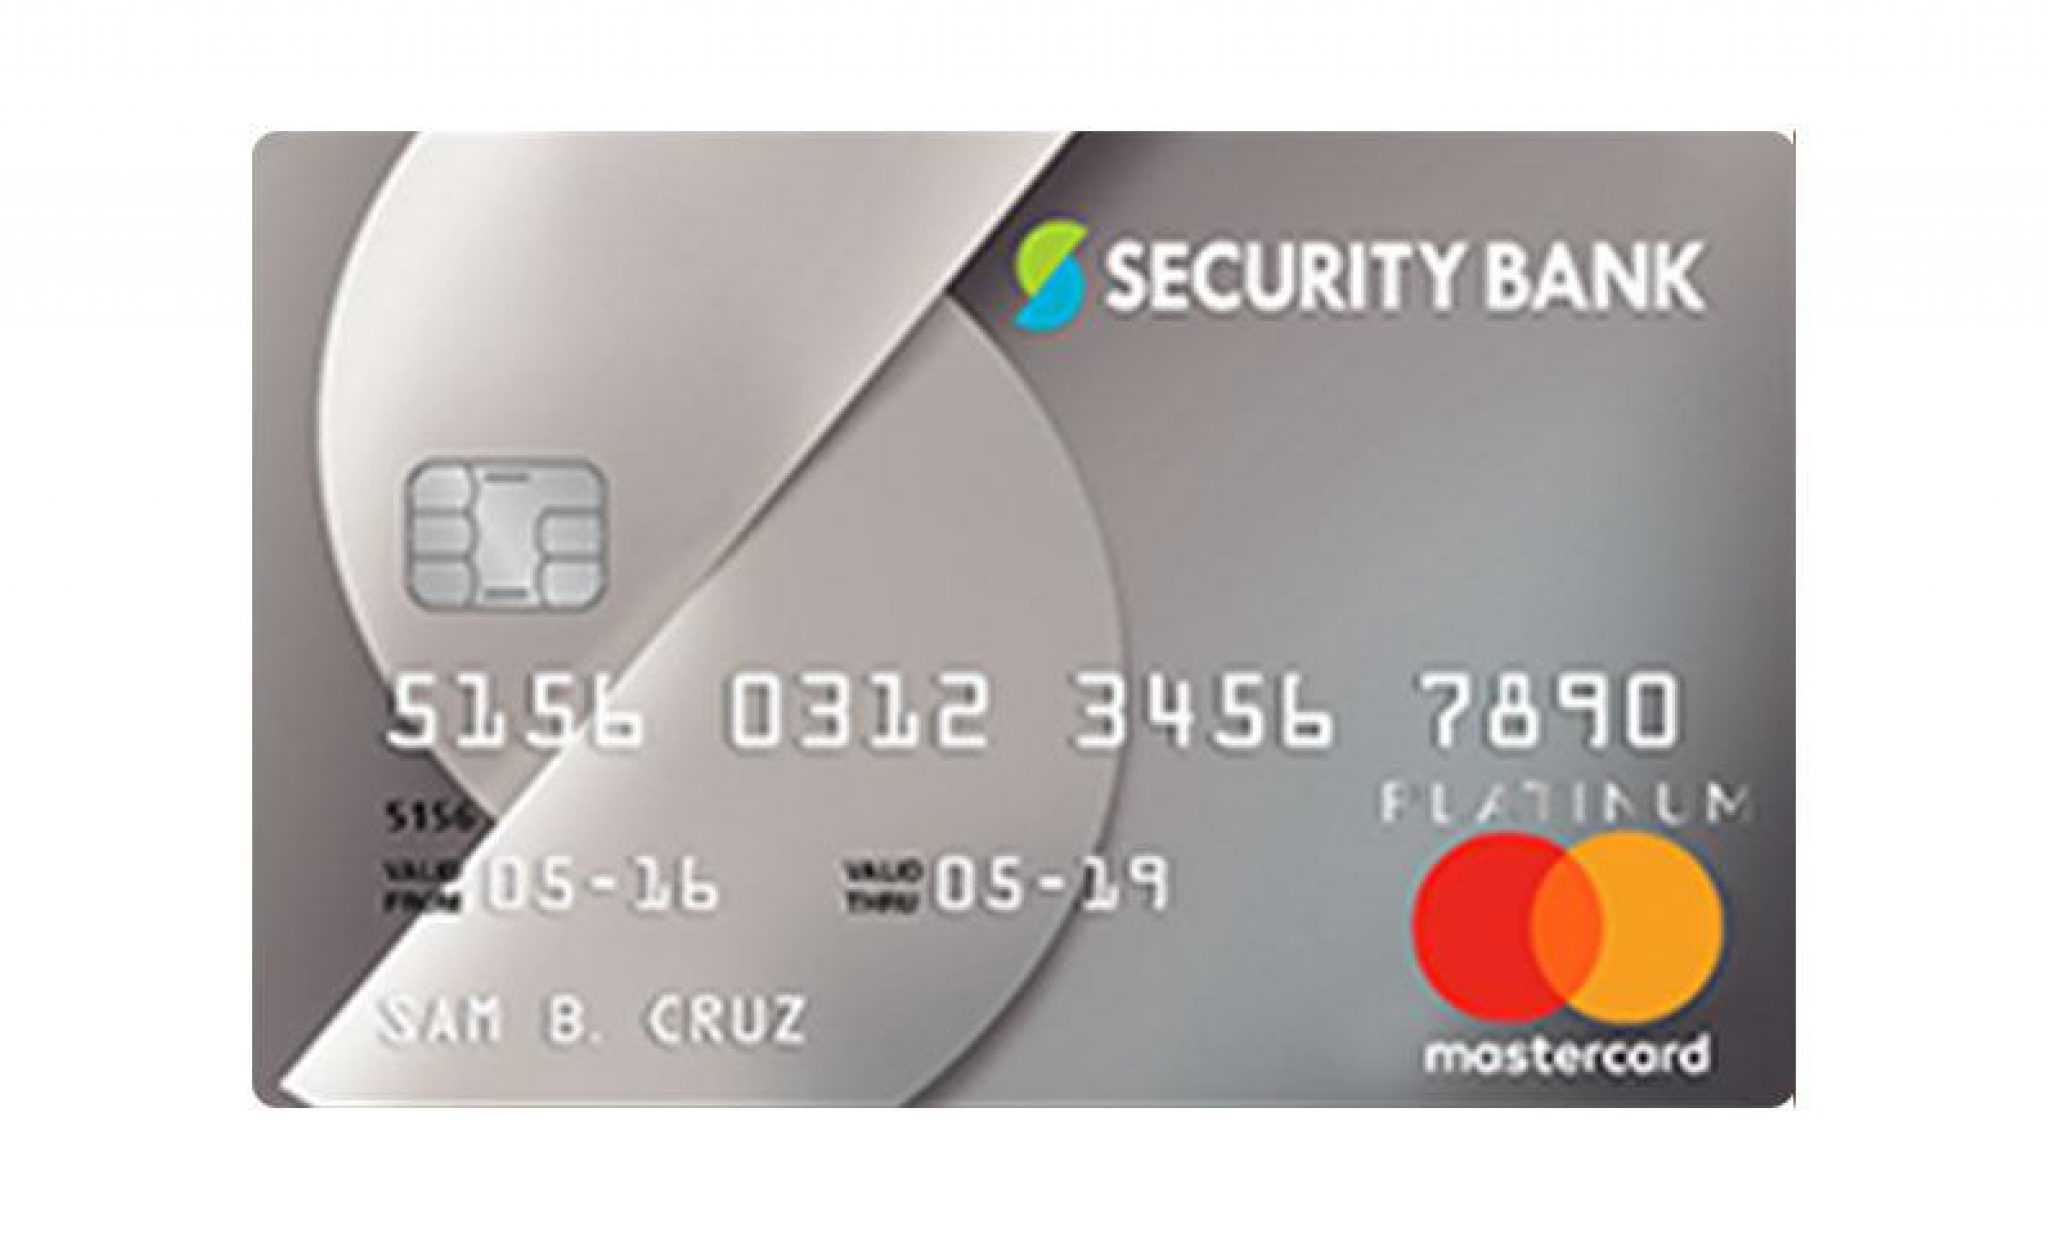 Security Bank Platinum Mastercard